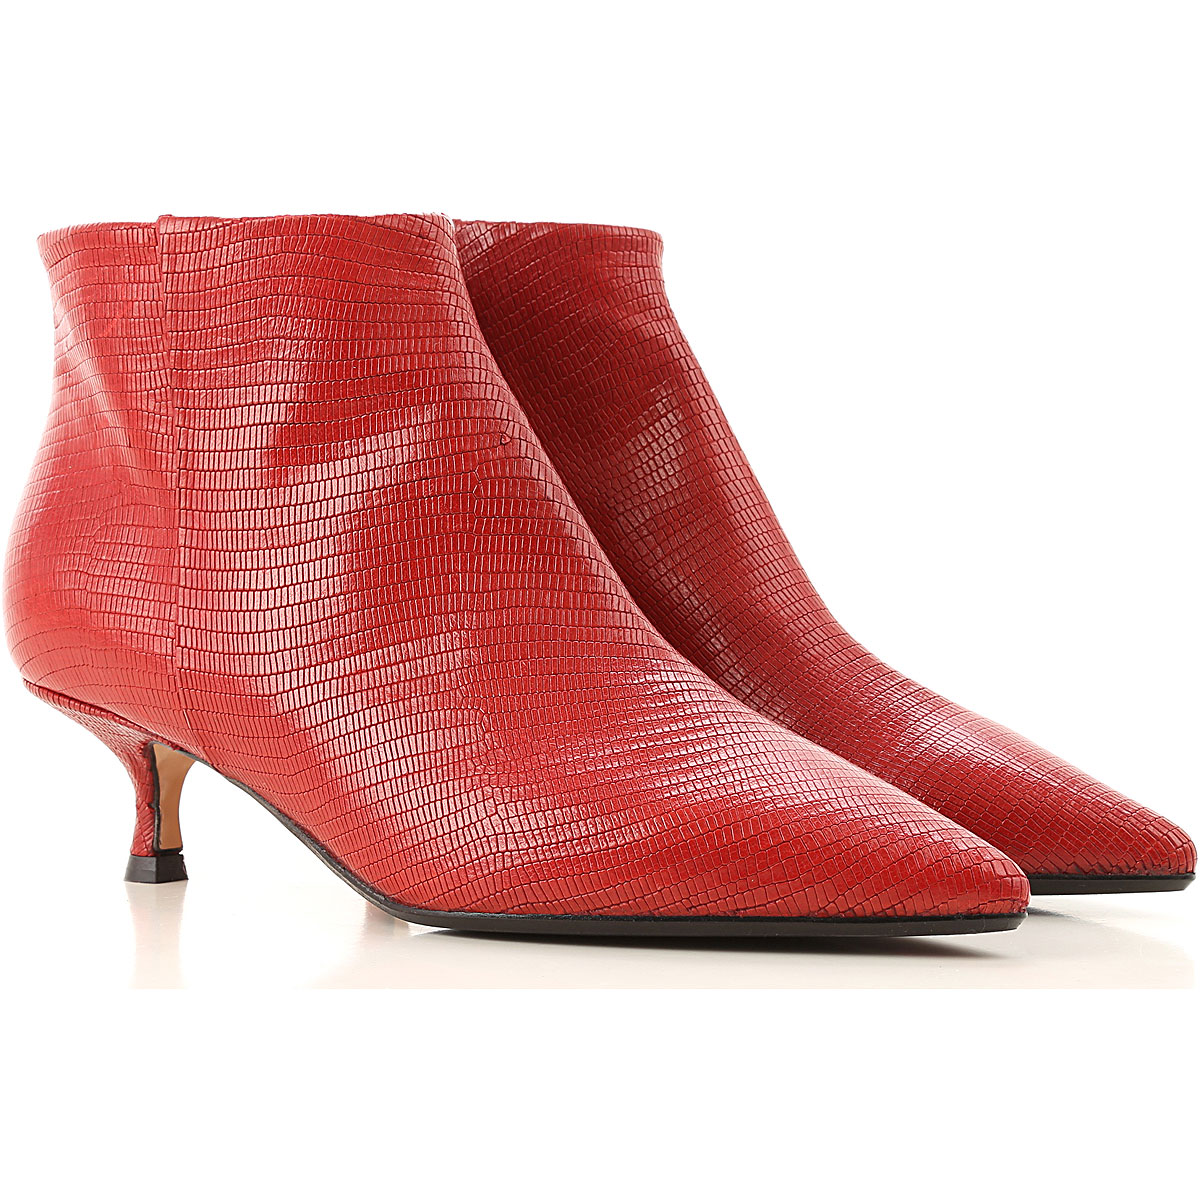 Anna F. Boots for Women, Booties, Red, Leather, 2019, 7